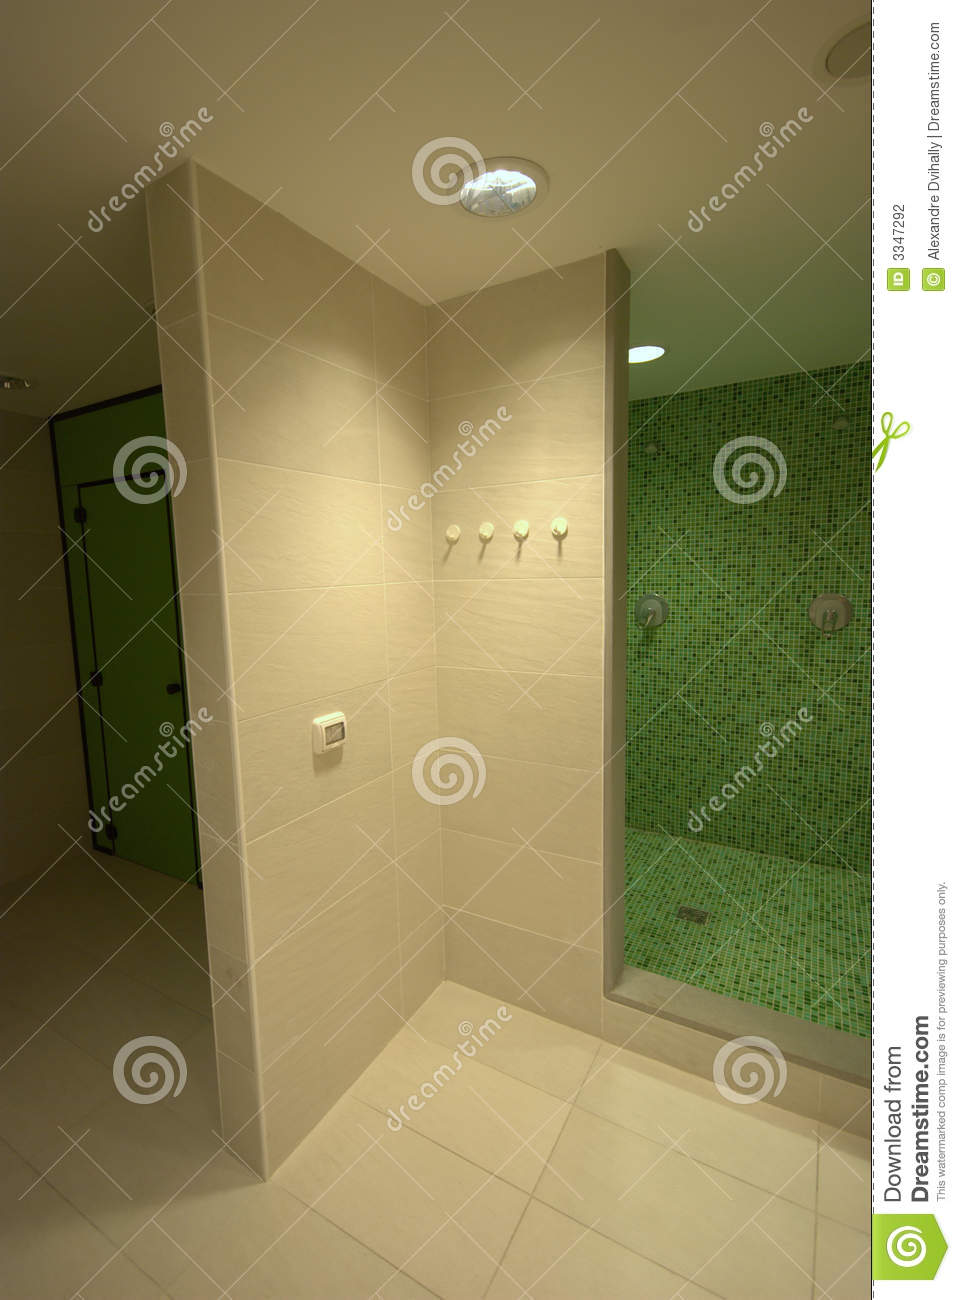 Design Spa Showers alexandra spa showers peeinn com bathroom stock photography image 3347292